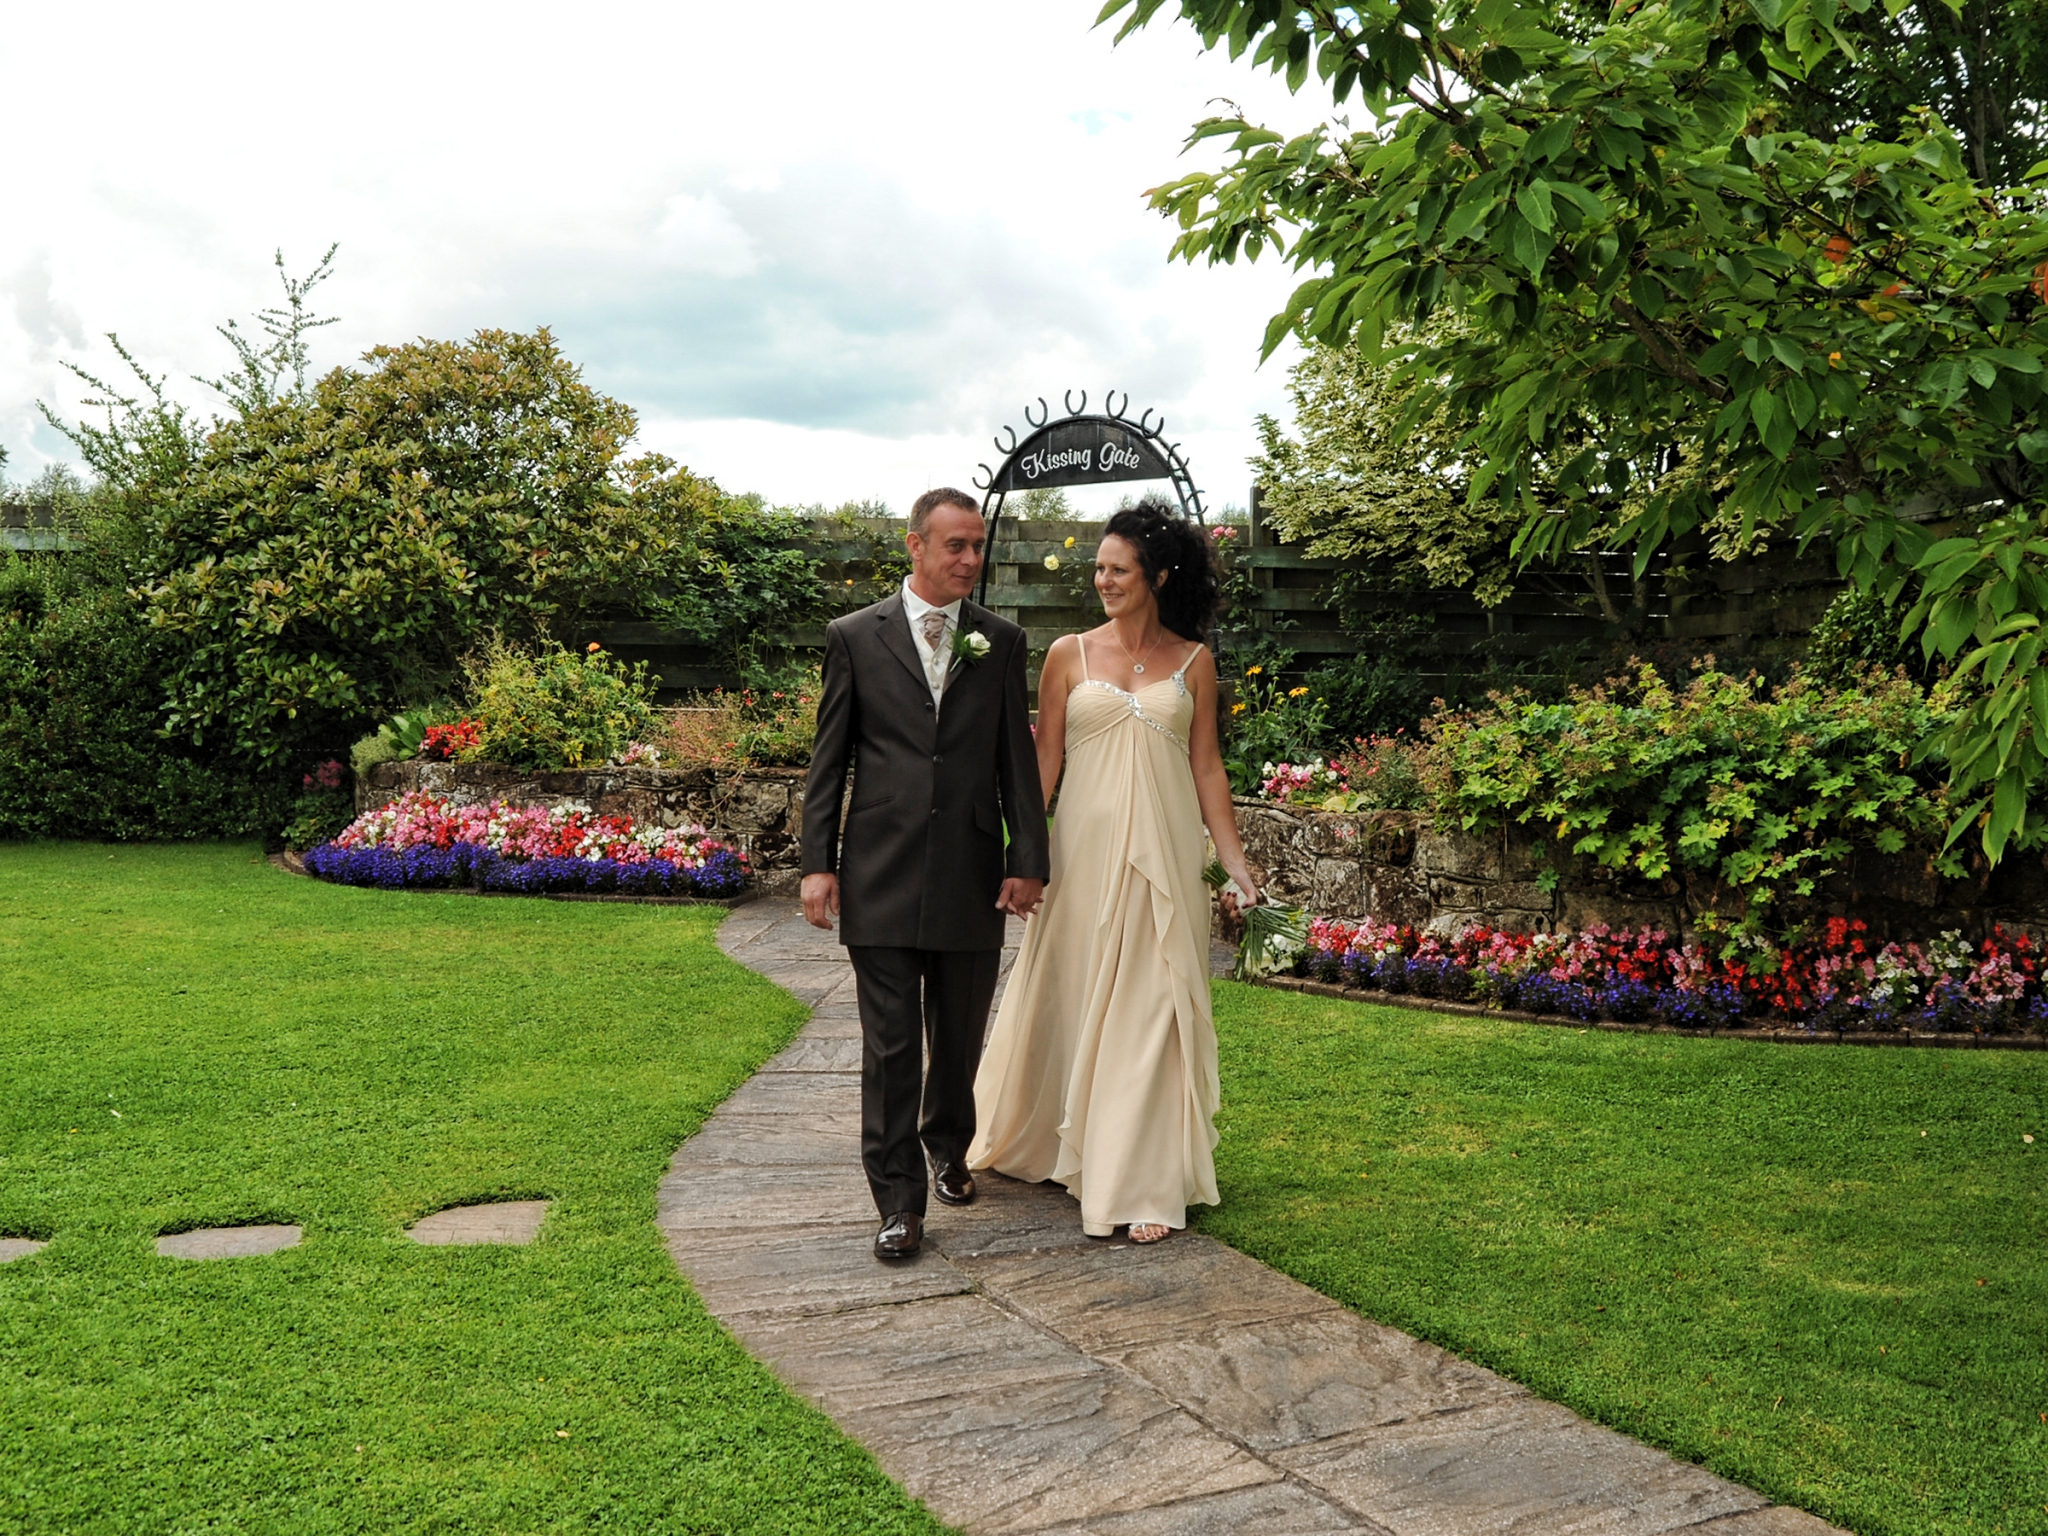 Wedding gallery from The Mill Forge near Gretna Green